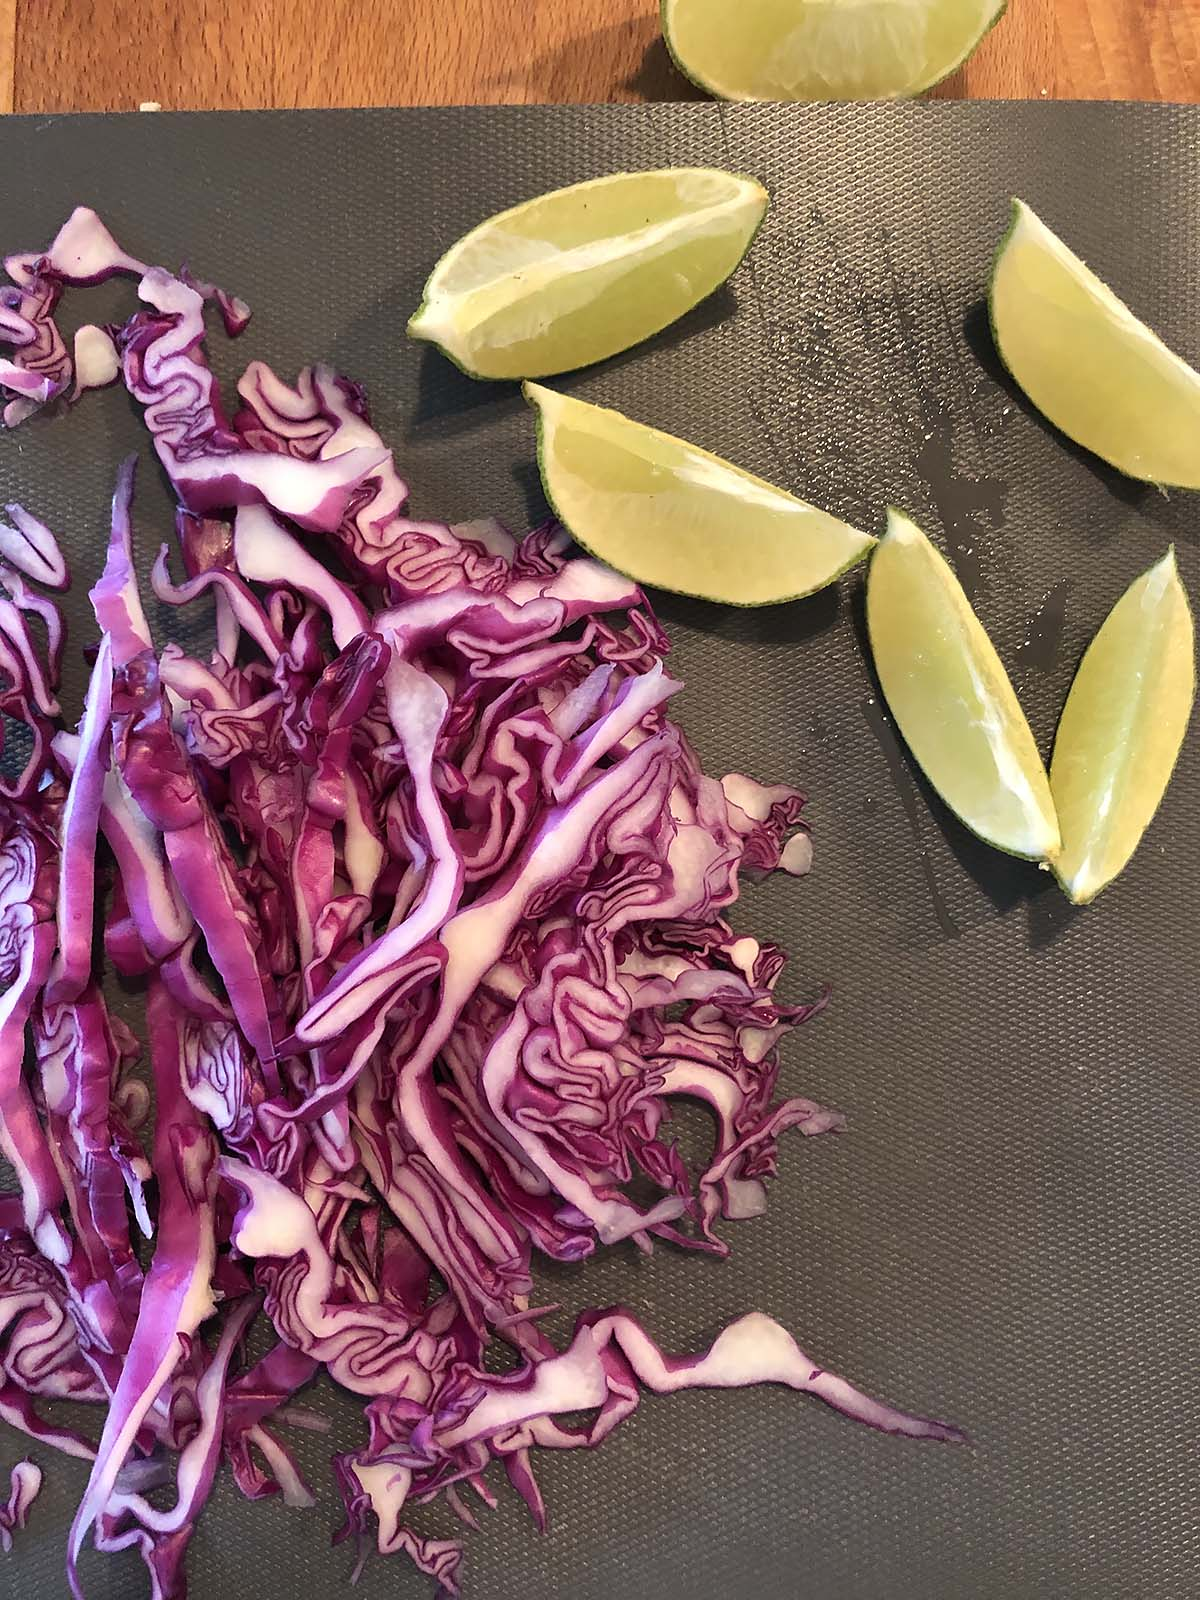 red cabbage and limes